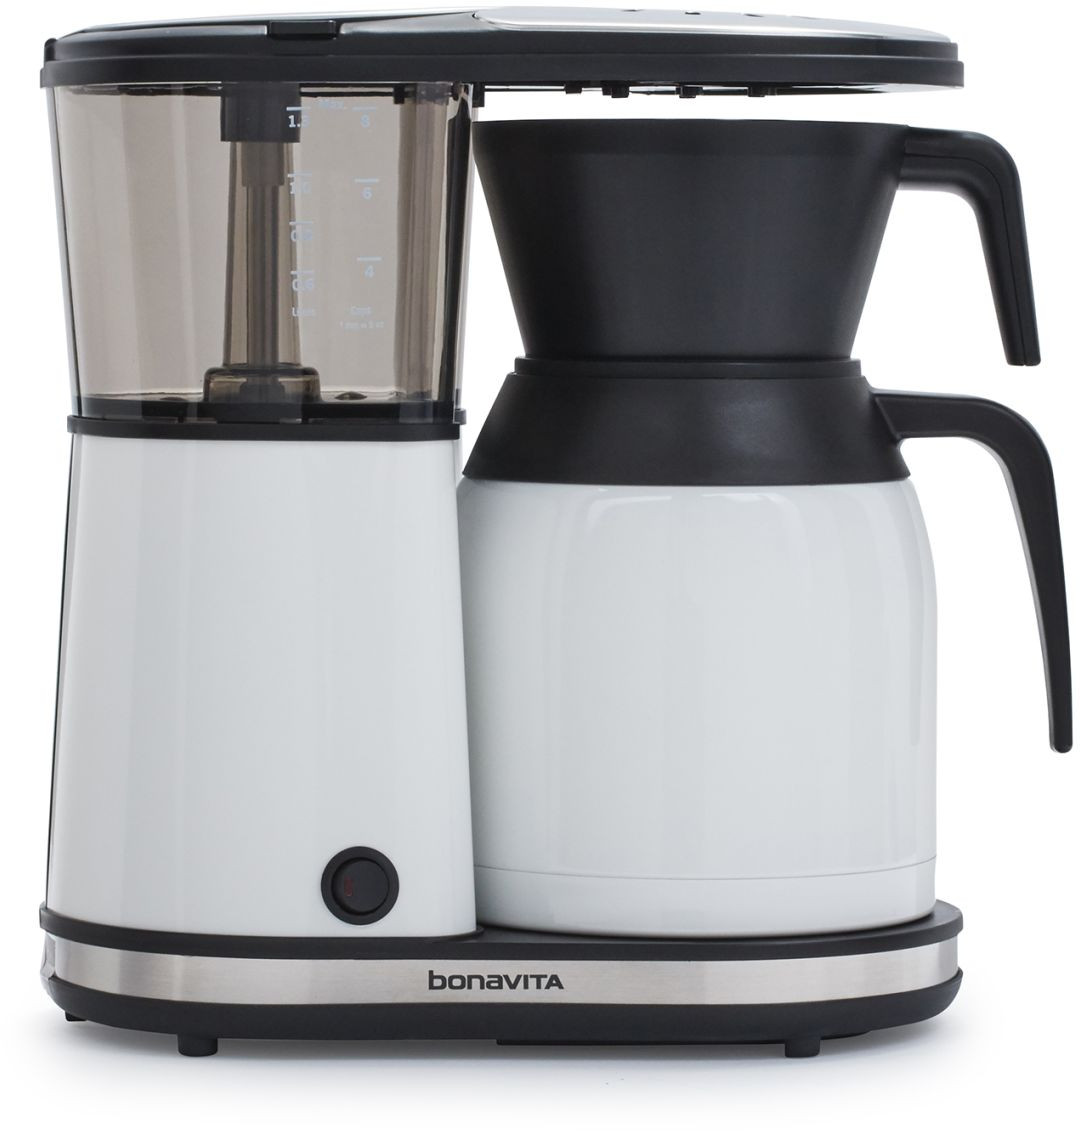 bonavita bv1900tswh 8 cup coffee maker with stainless steel carafe white espresso planet canada. Black Bedroom Furniture Sets. Home Design Ideas